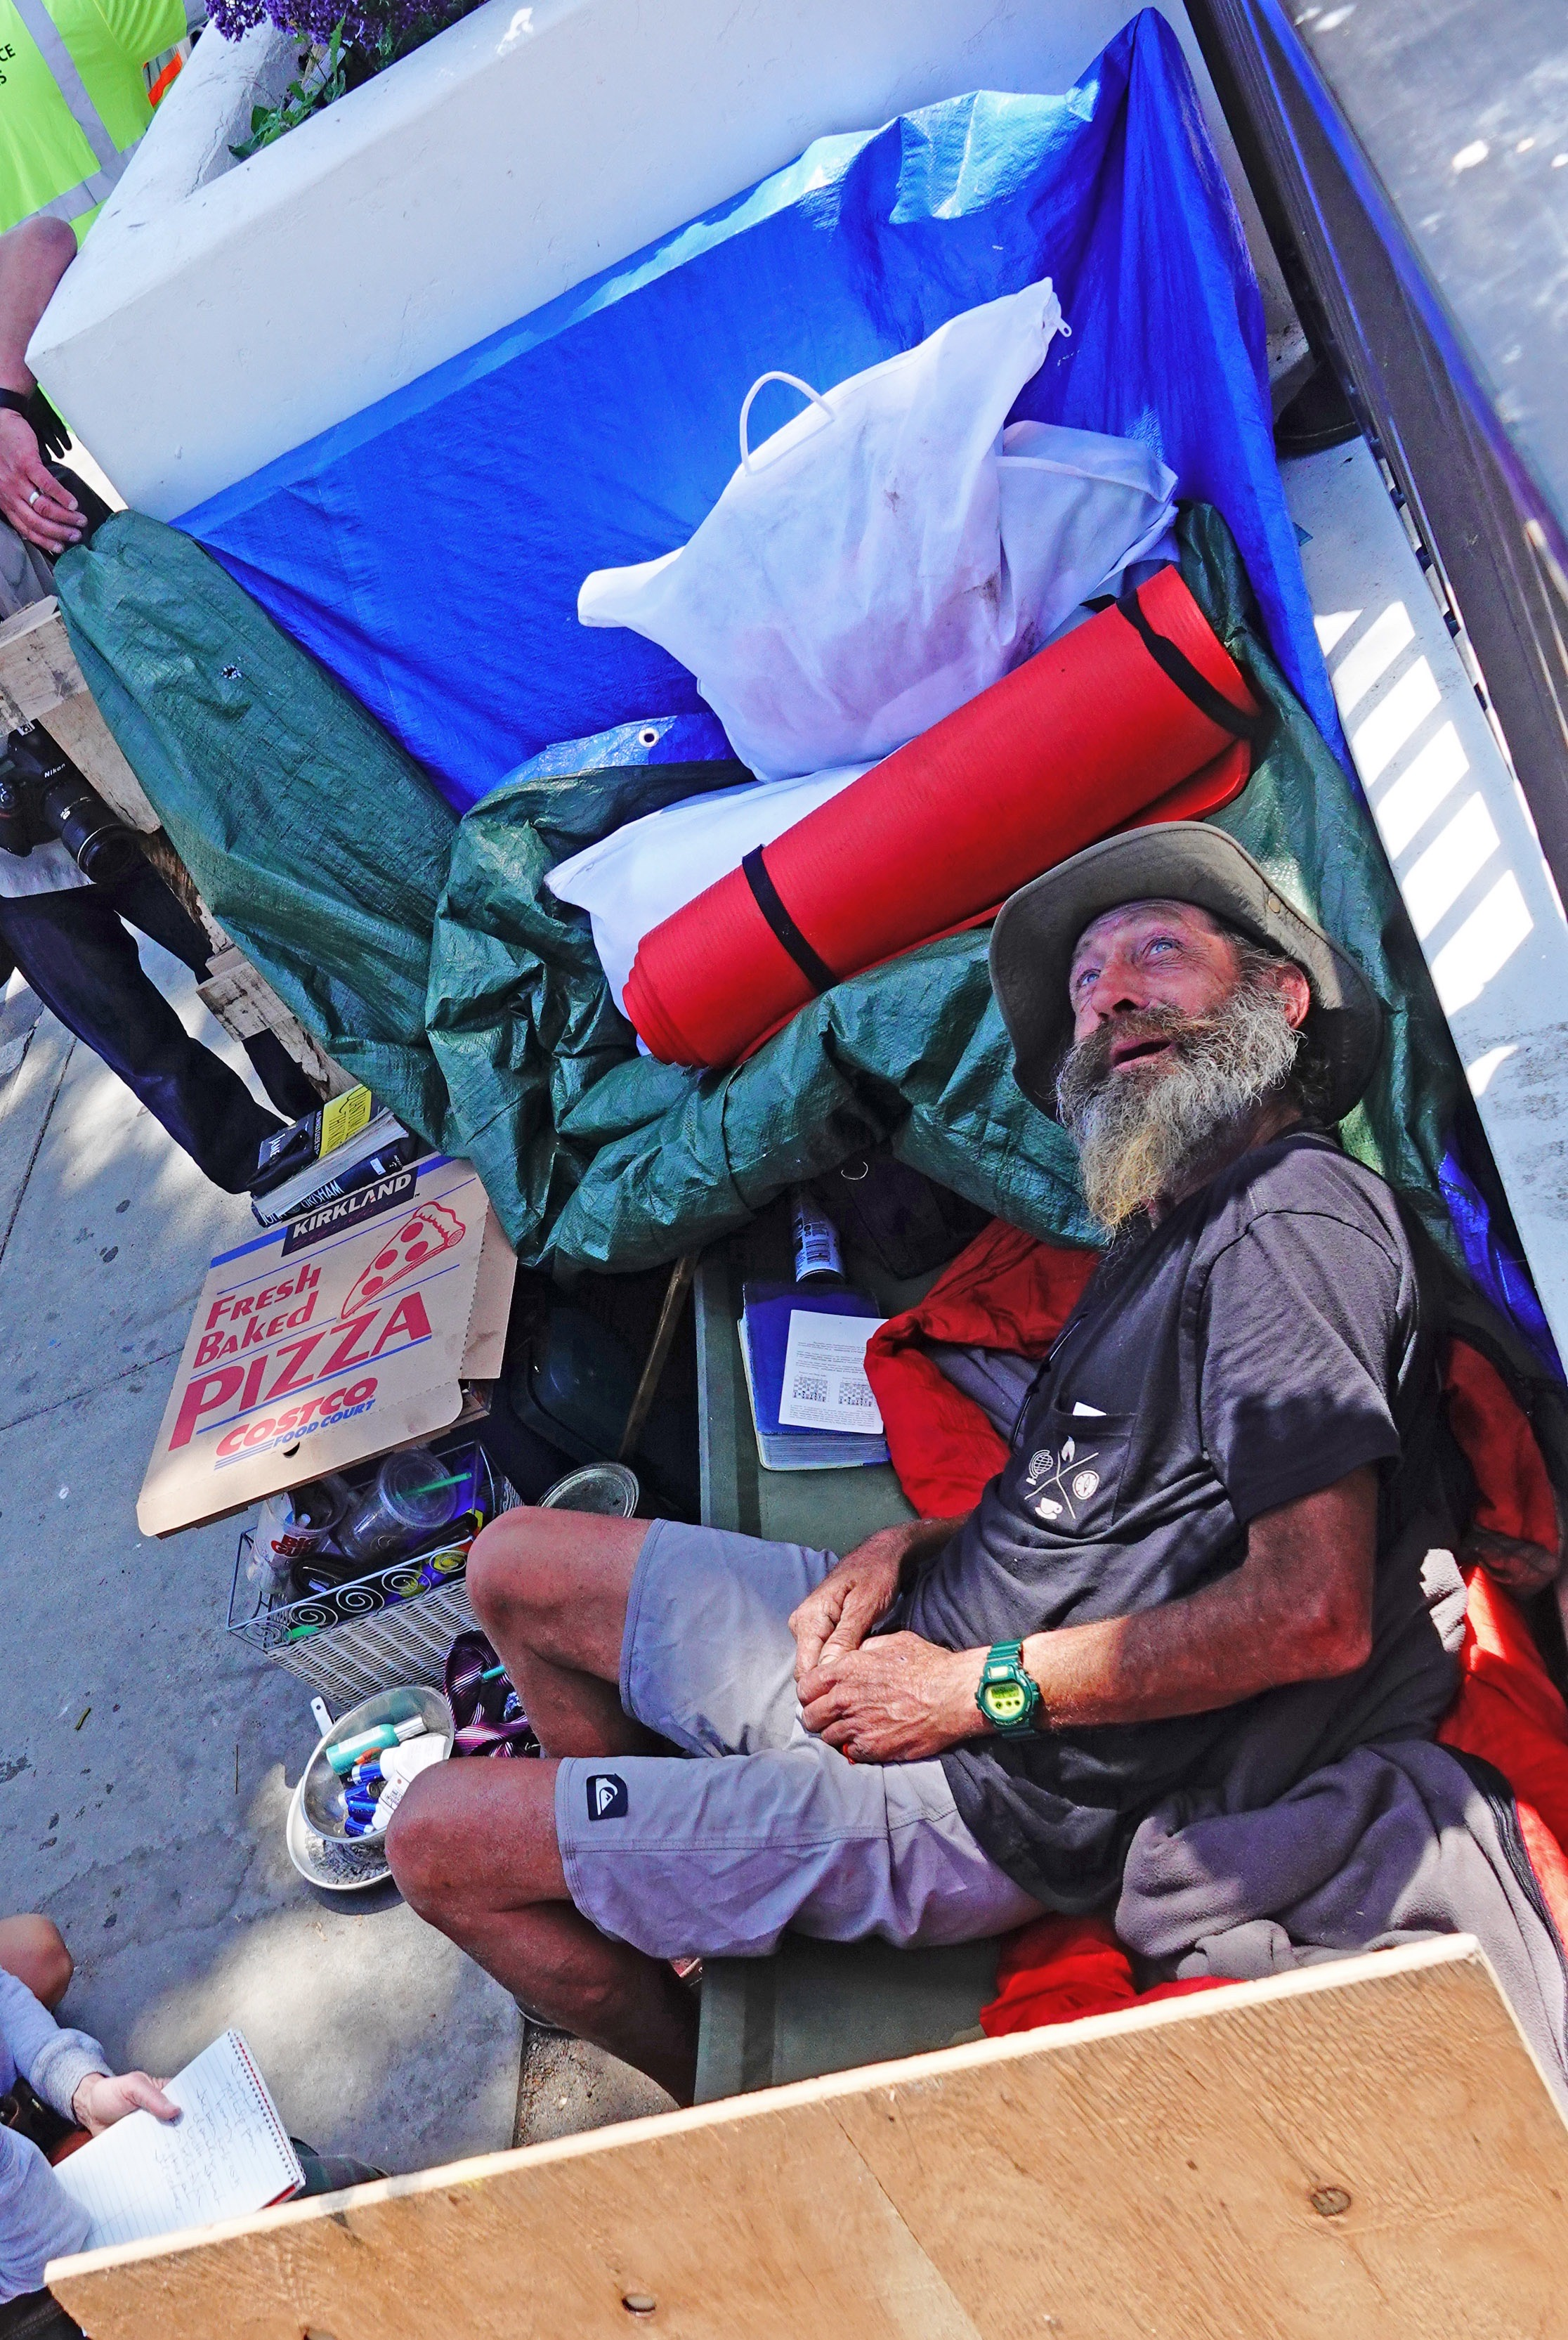 A camper identified as Duane takes a moment to relax while Sheriff's deputies endeavor to clear San Clemente's North Beach parking lot of an encampment on Friday, May 24. The city offered the campers an alternate location a short distance up Avenida Pico from the beach. Photo: Fred Swegles